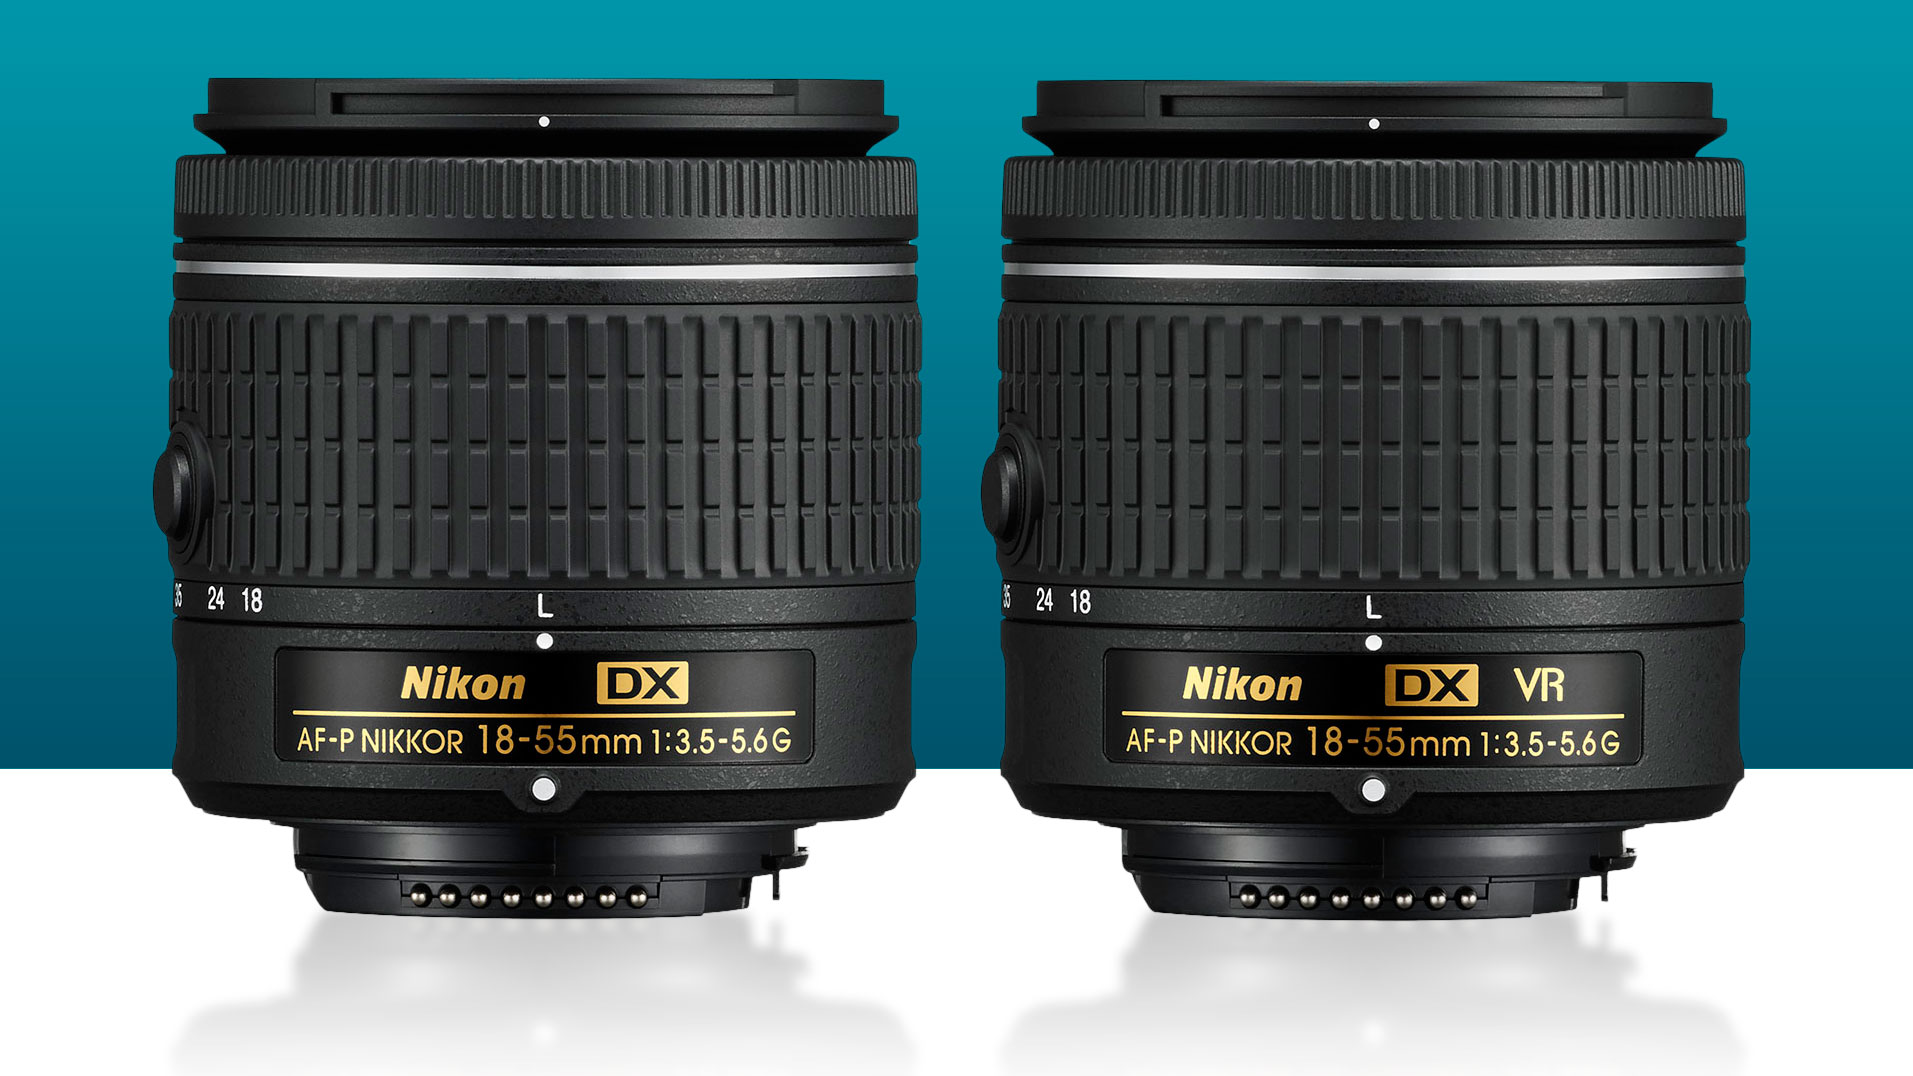 Nikon aims new AF-P kit lenses at entry-level DSLRs and